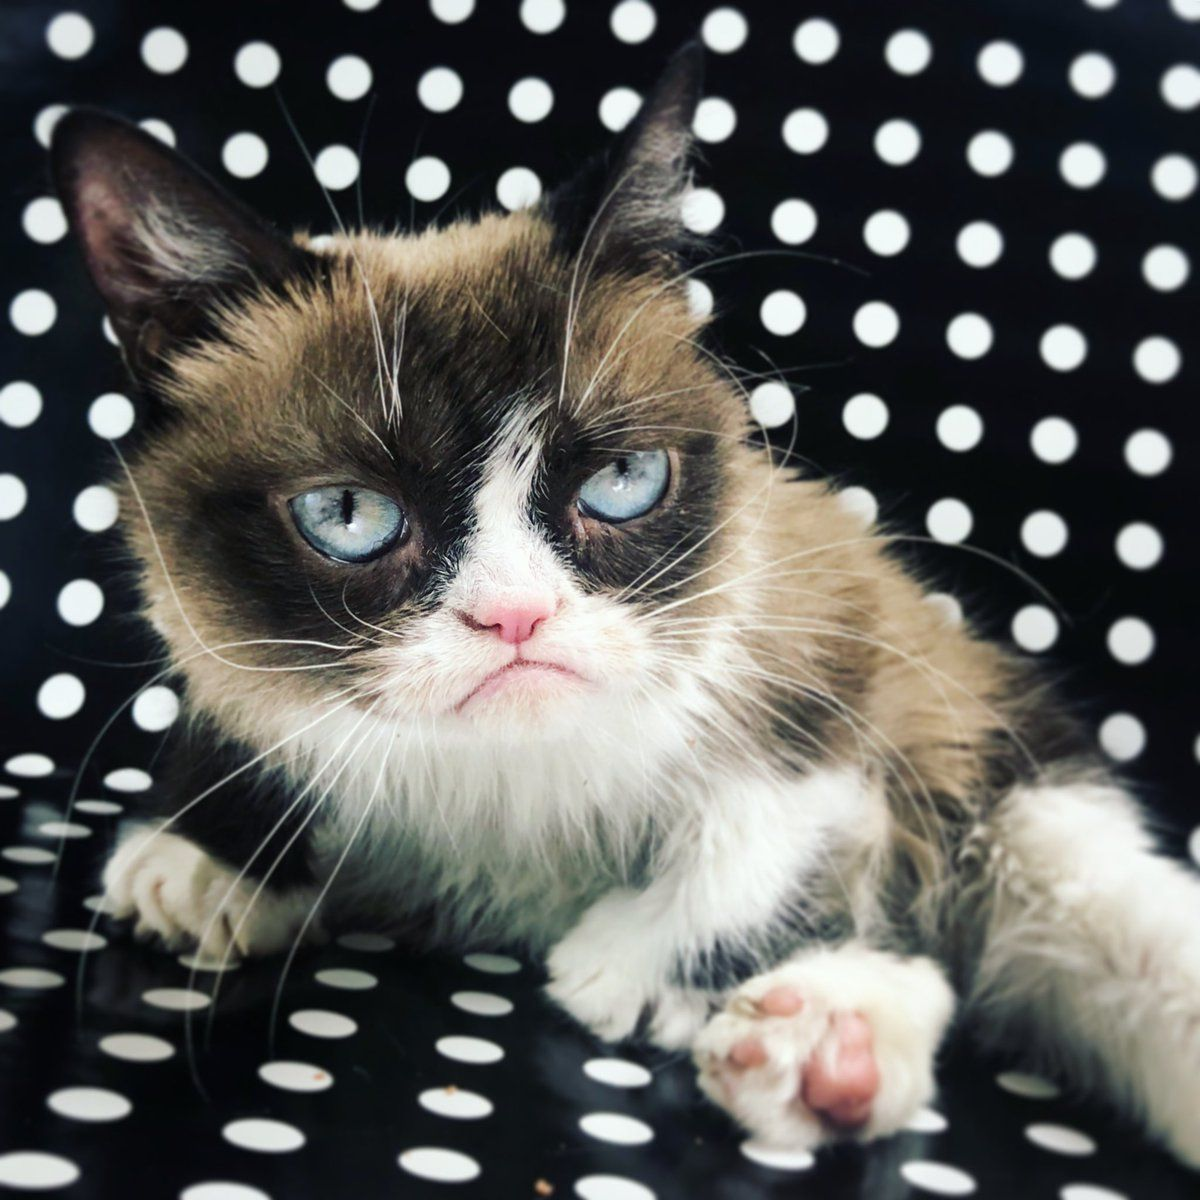 Pin by erp visions on grumpee cat Grumpy cat, Feline, Cats